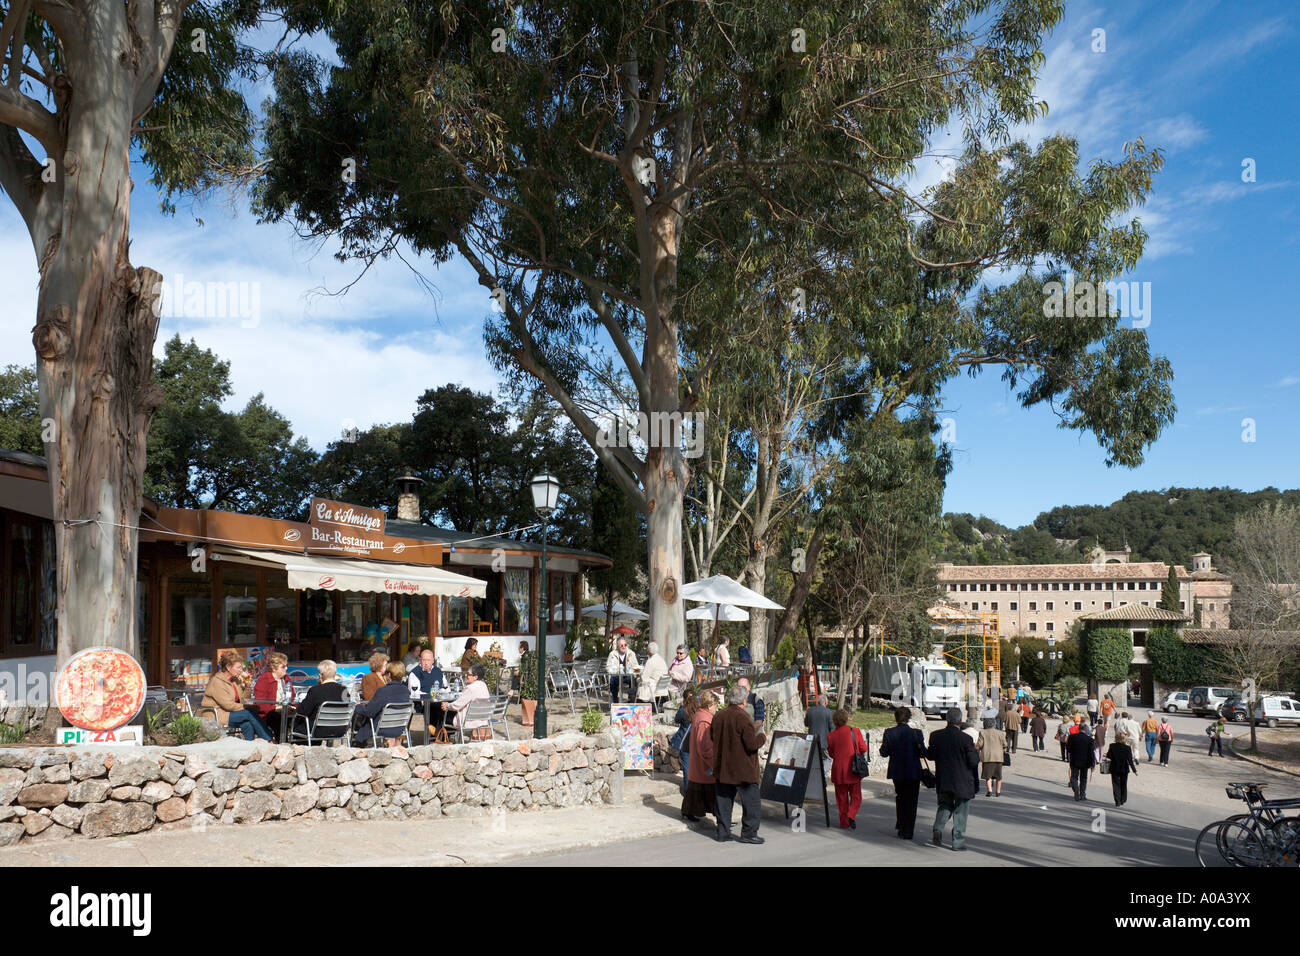 Restaurant at the Monastery of Lluc in the winter season, Mallorca, Balearic Islands, Spain - Stock Image